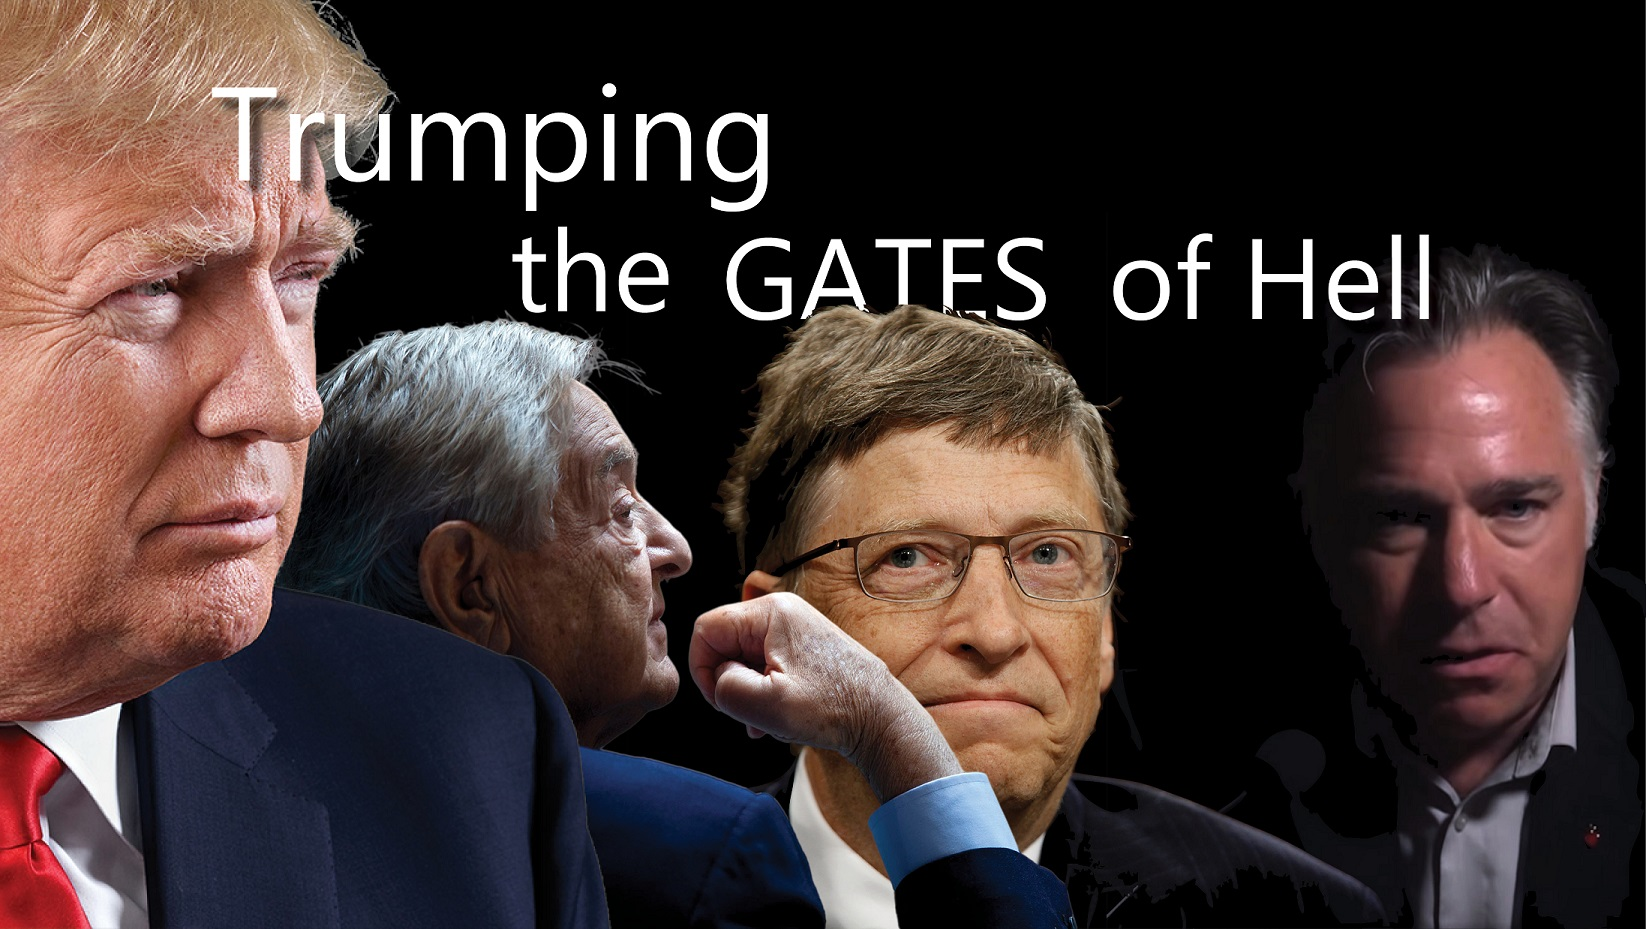 gates of hell thumbnail